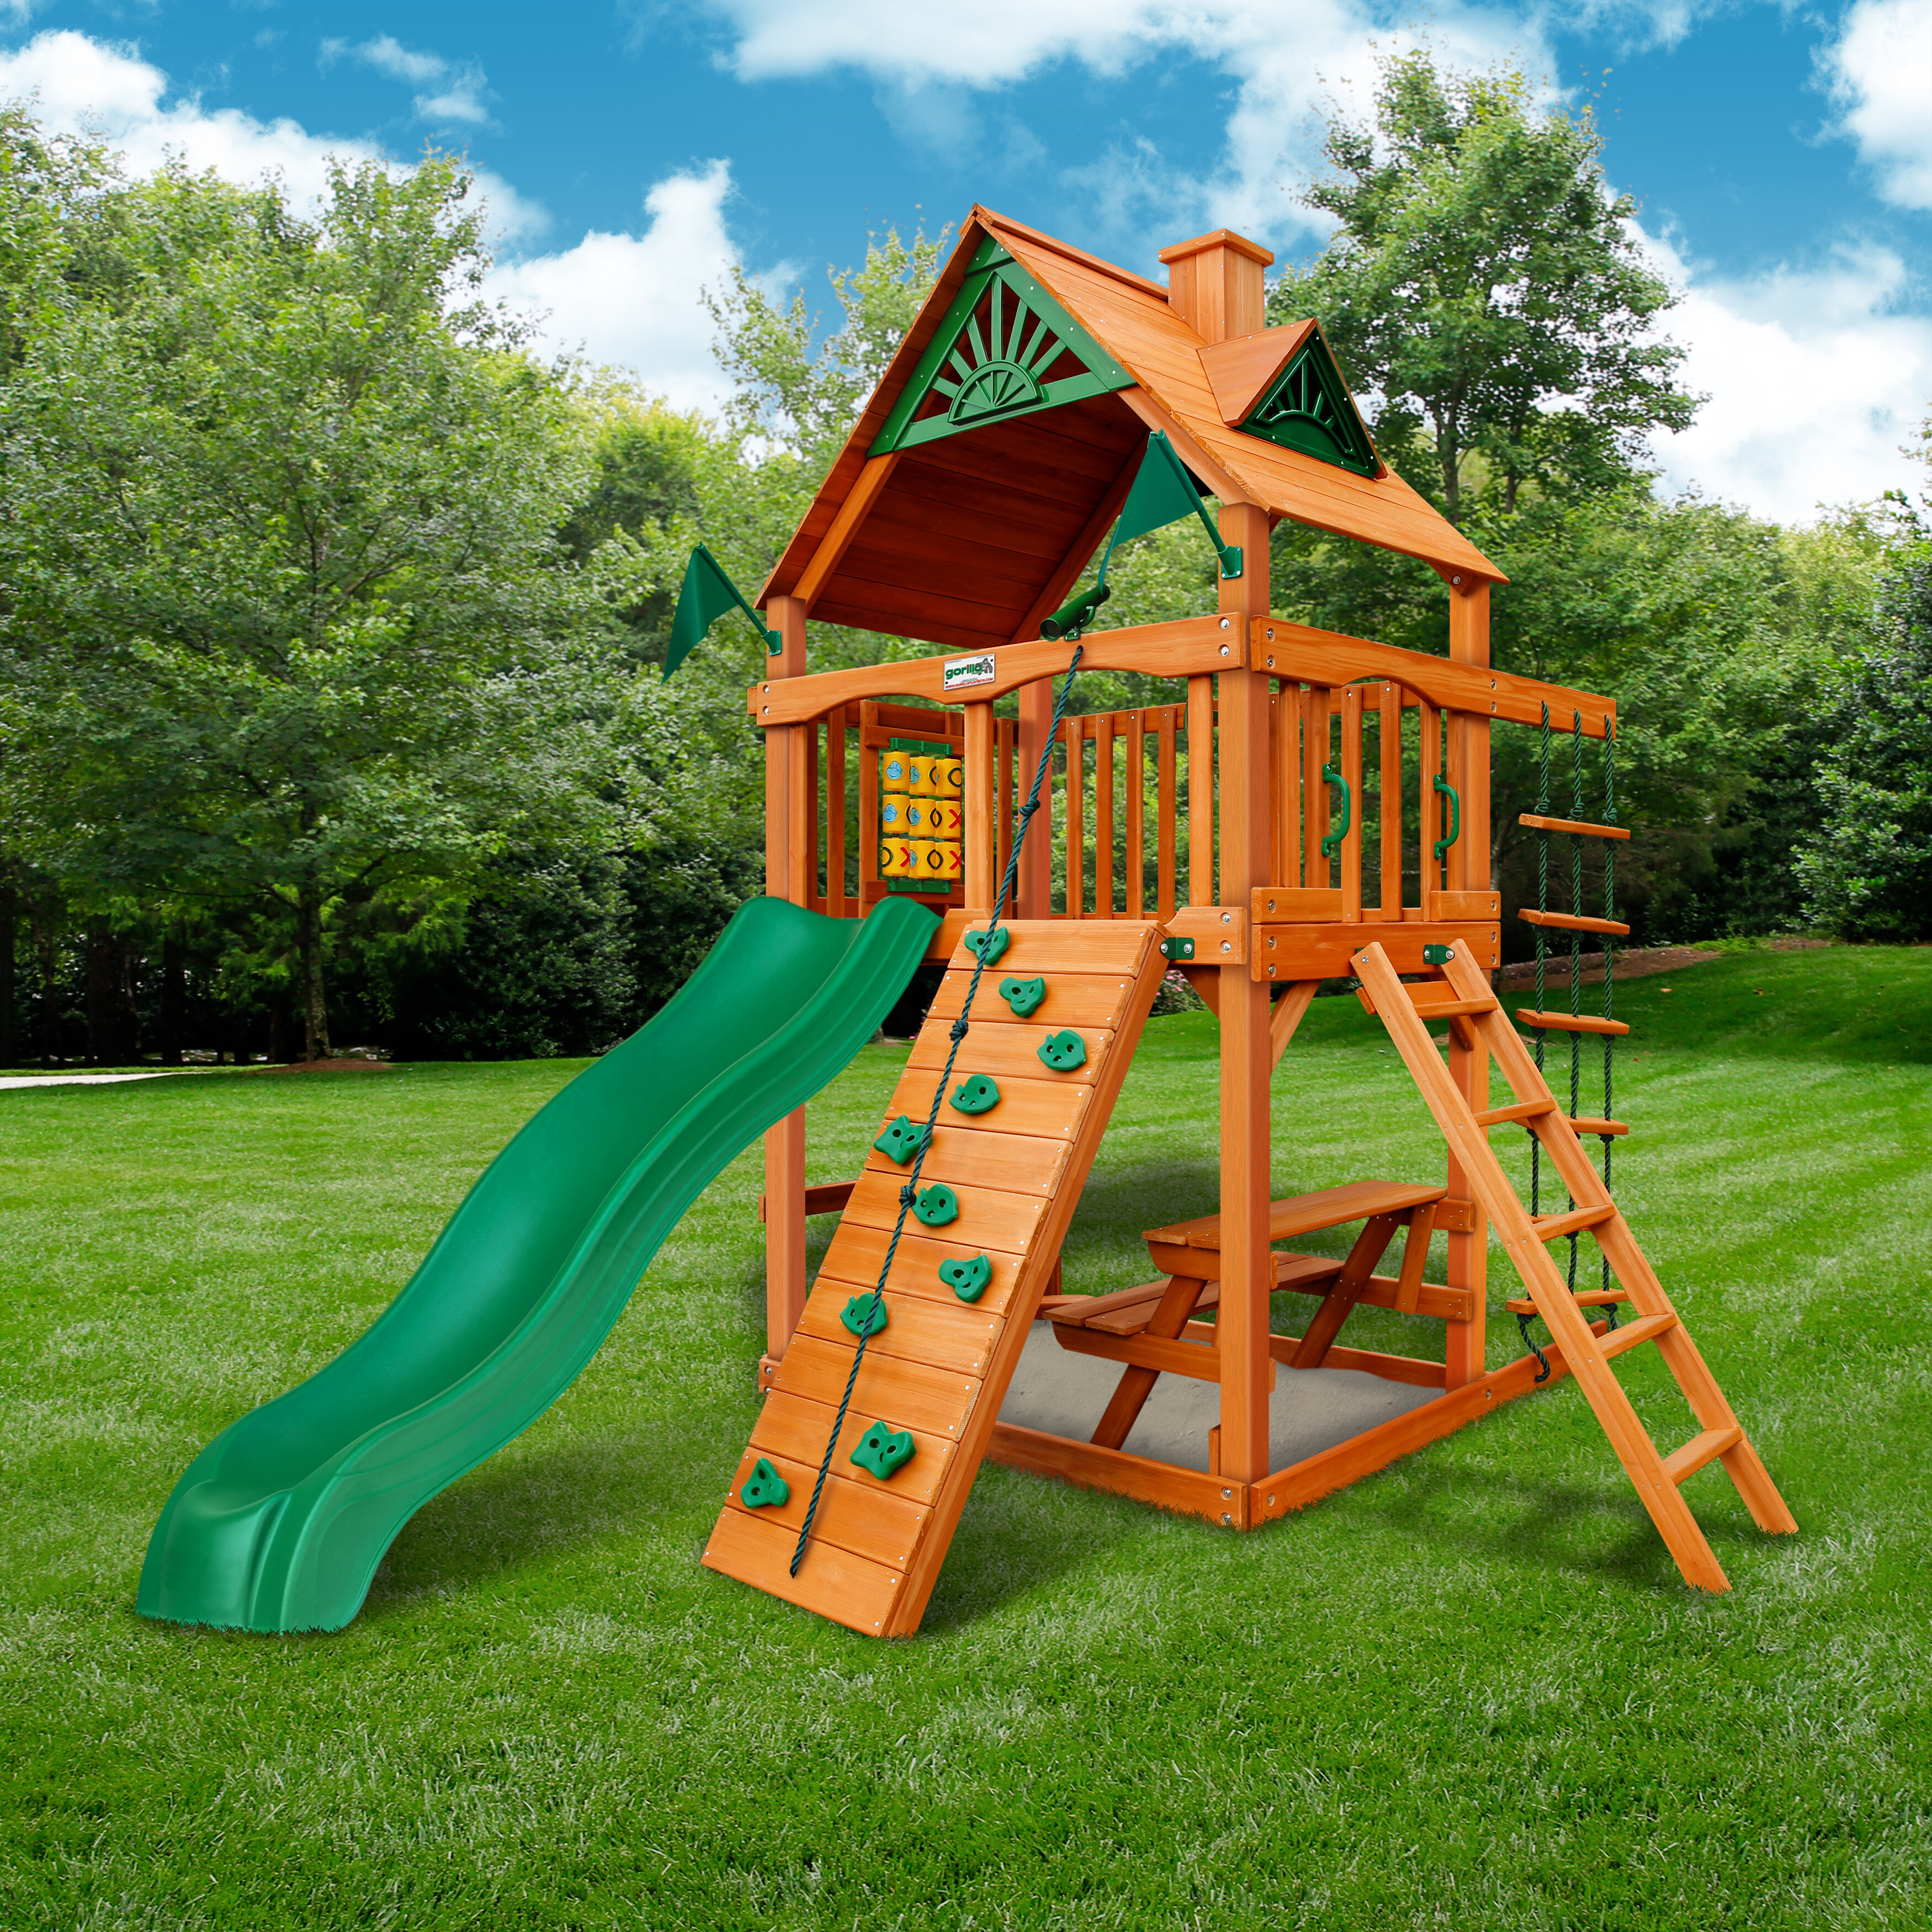 Gorilla Playsets Chateau Tower Swing Set With Wood Roof Reviews